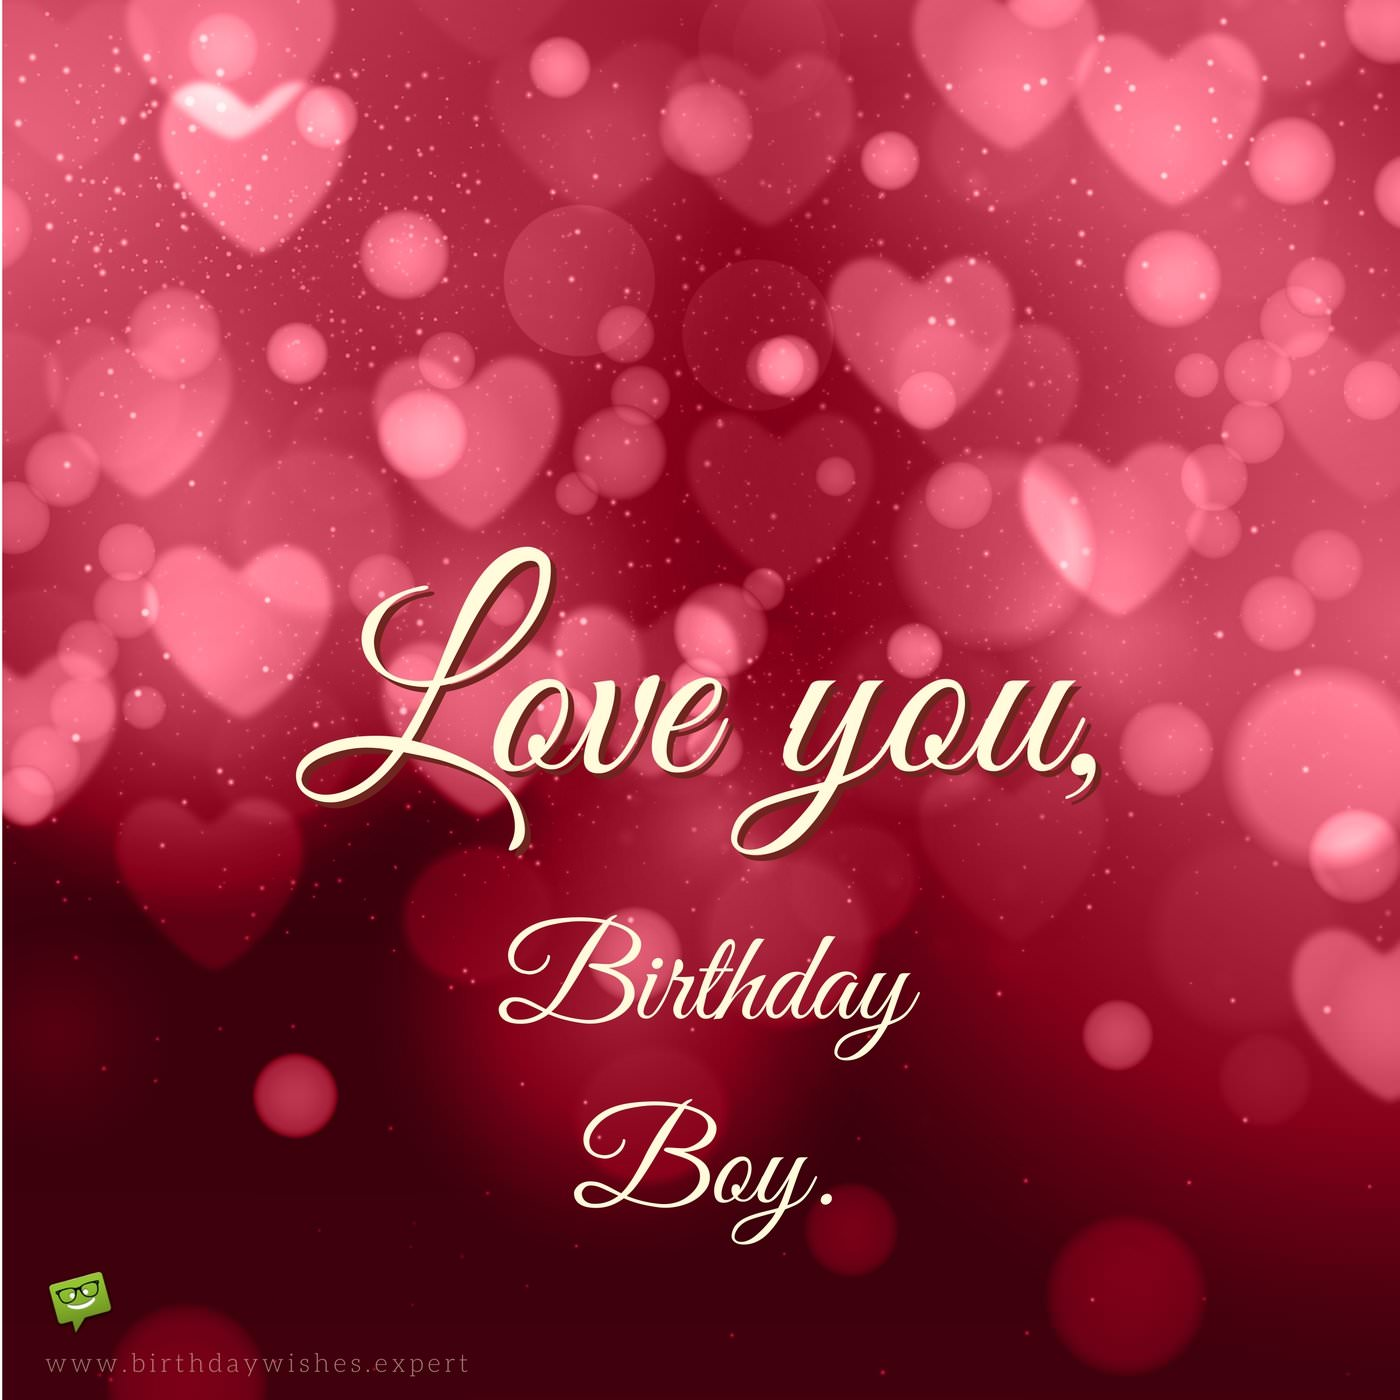 Smart funny and sweet birthday wishes for your boyfriend i love you birthday boy m4hsunfo